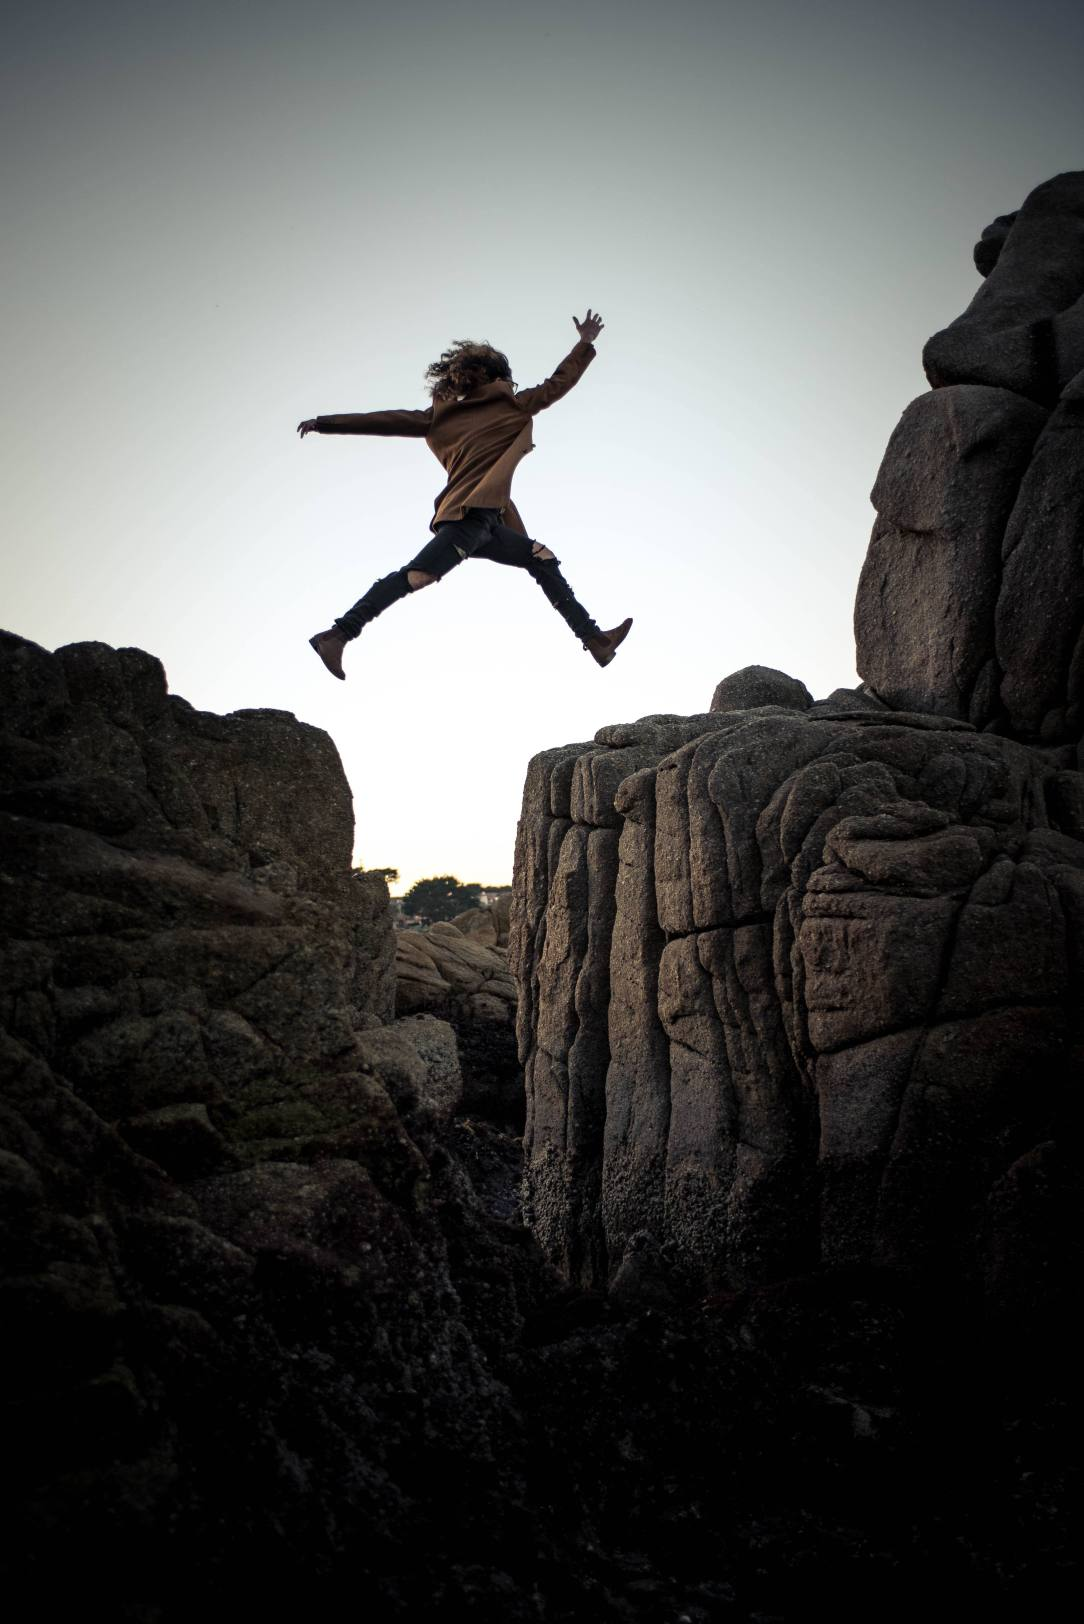 Woman Jumping -sober courage